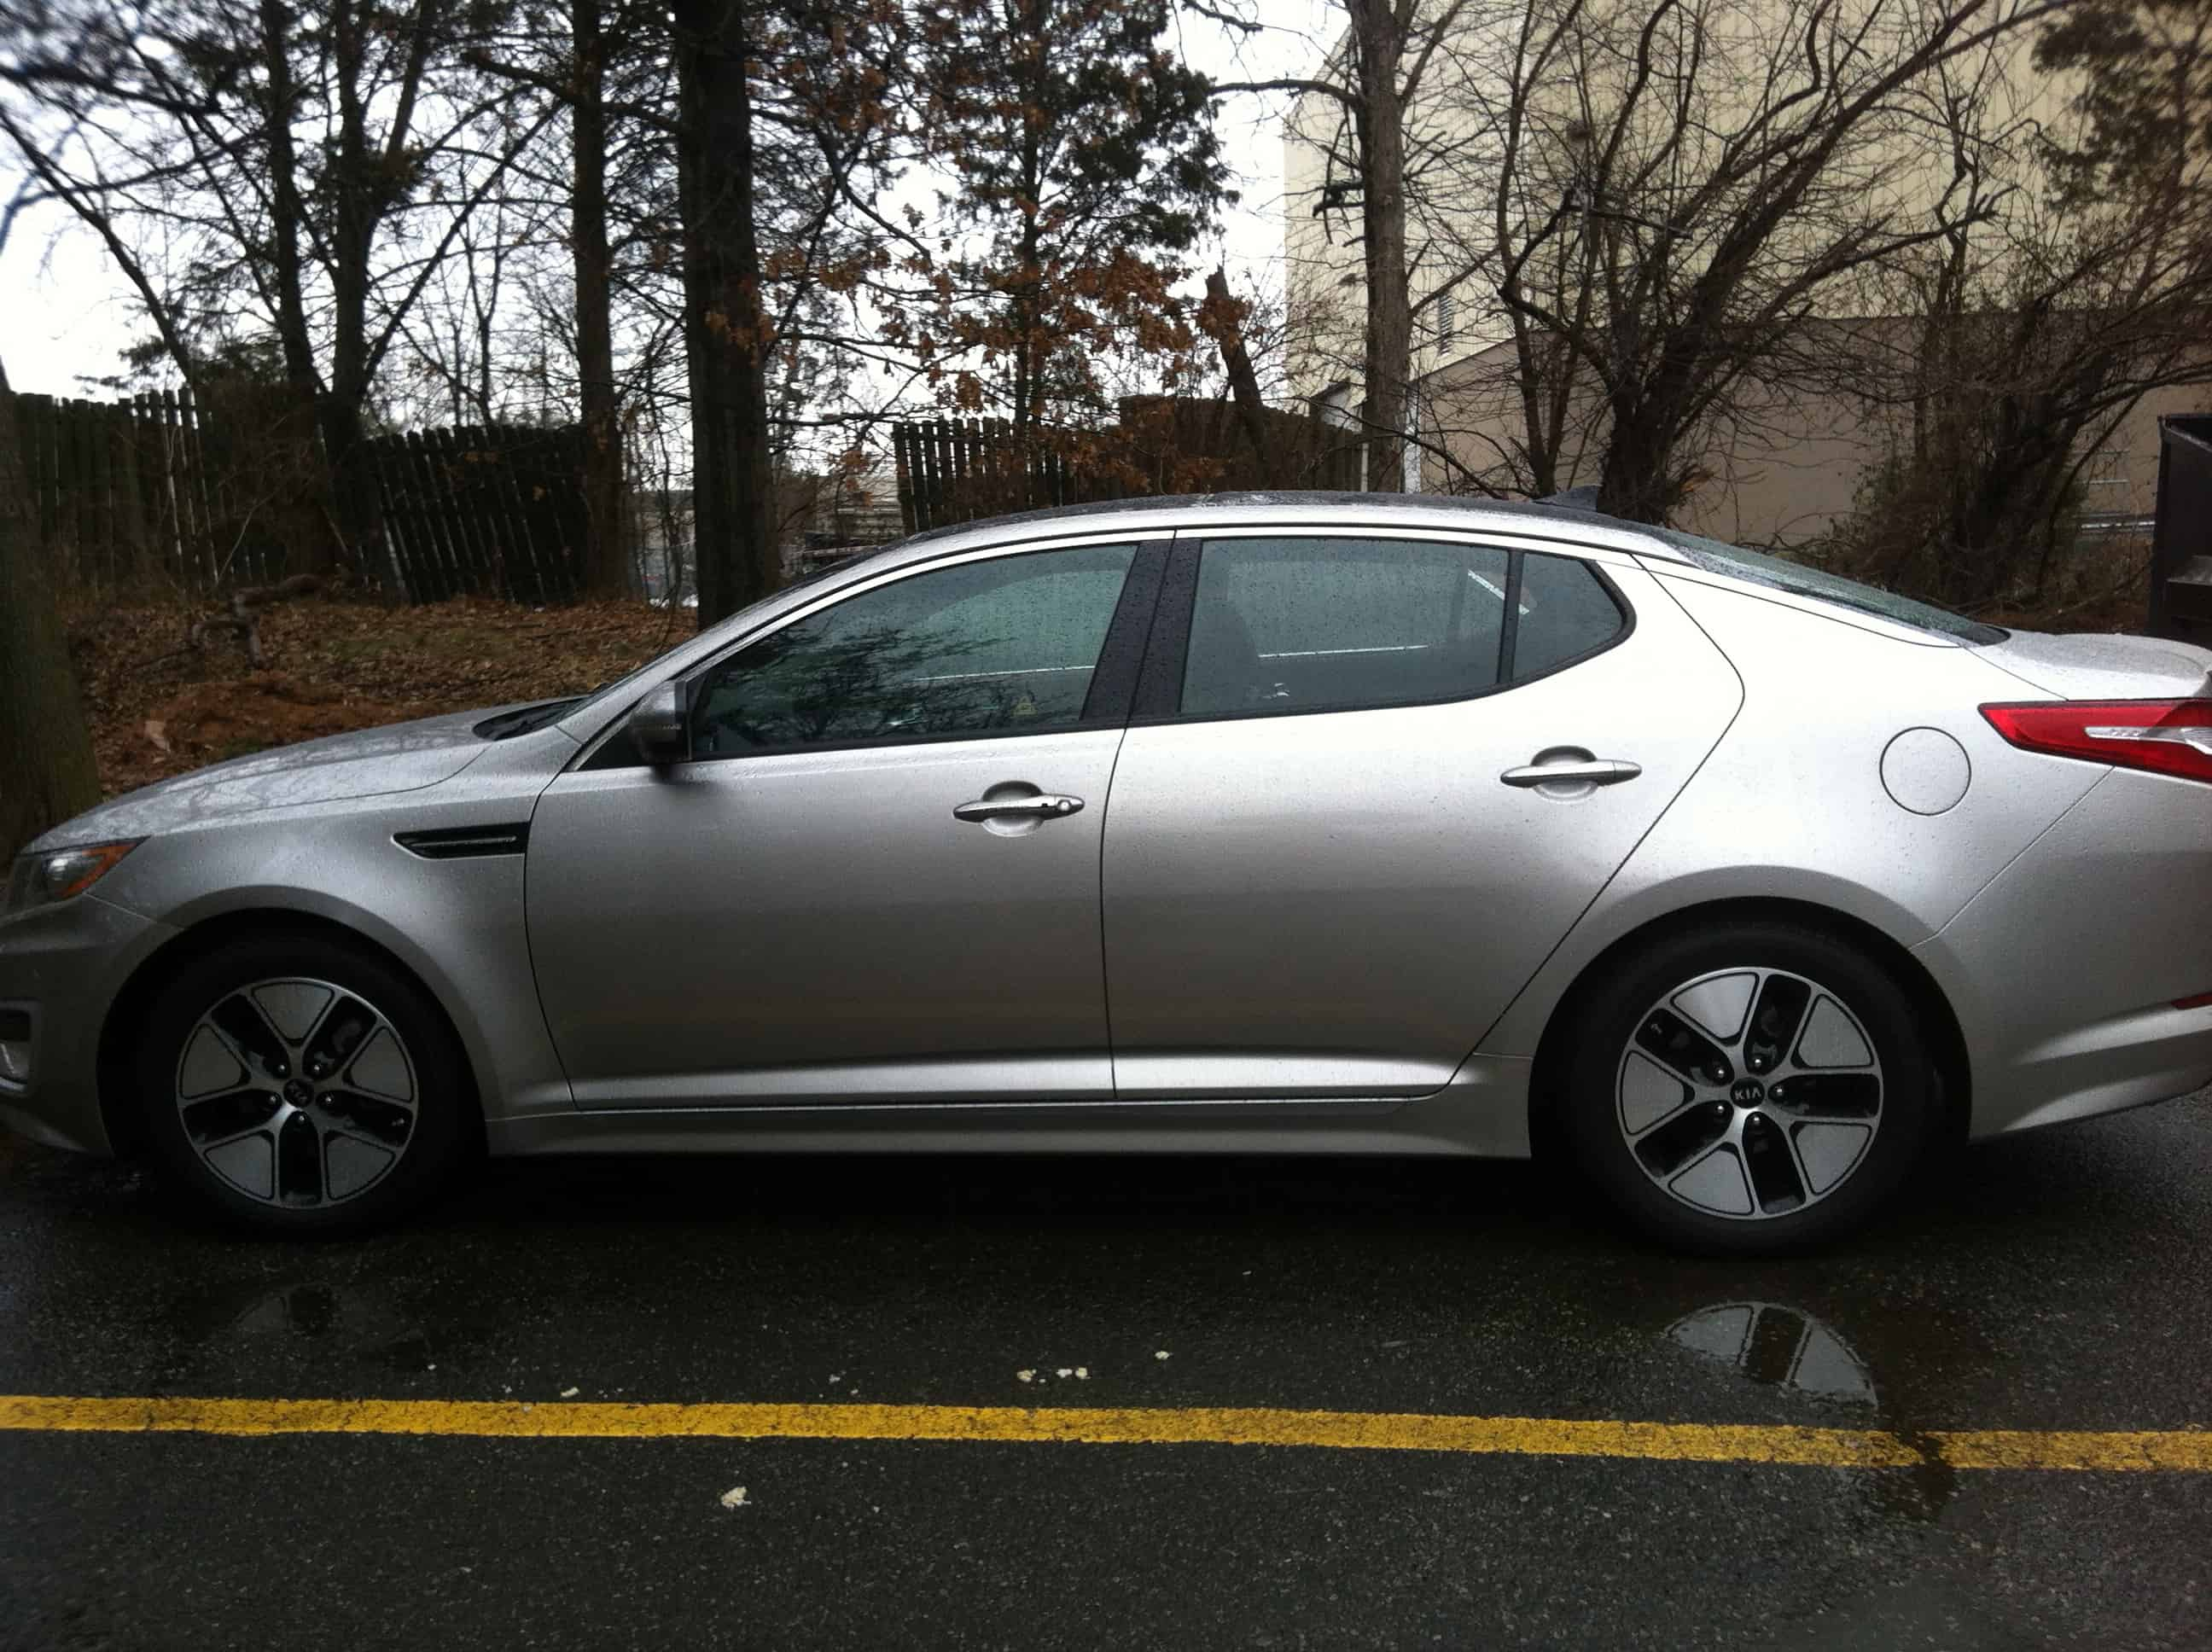 2012 kia optima hybrid review 4 hats and frugal. Black Bedroom Furniture Sets. Home Design Ideas